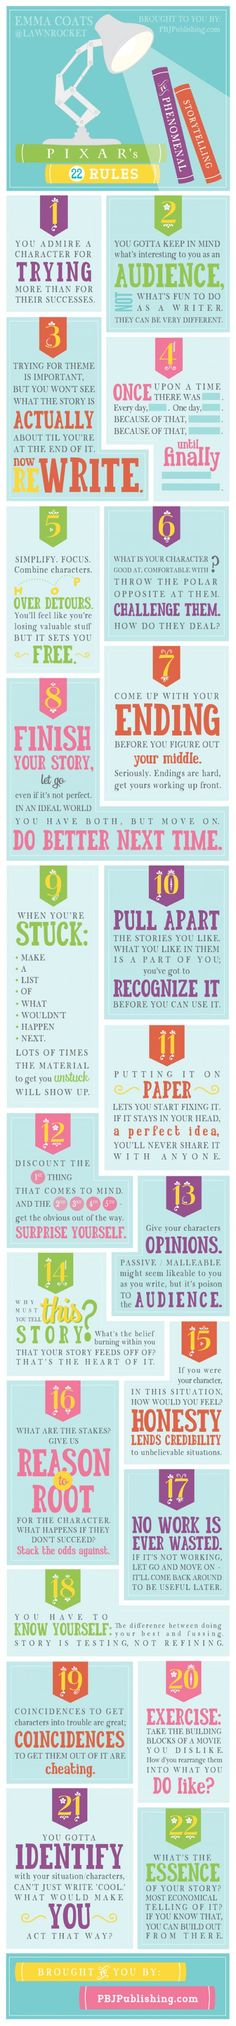 Pixar's 22 rules #infographic